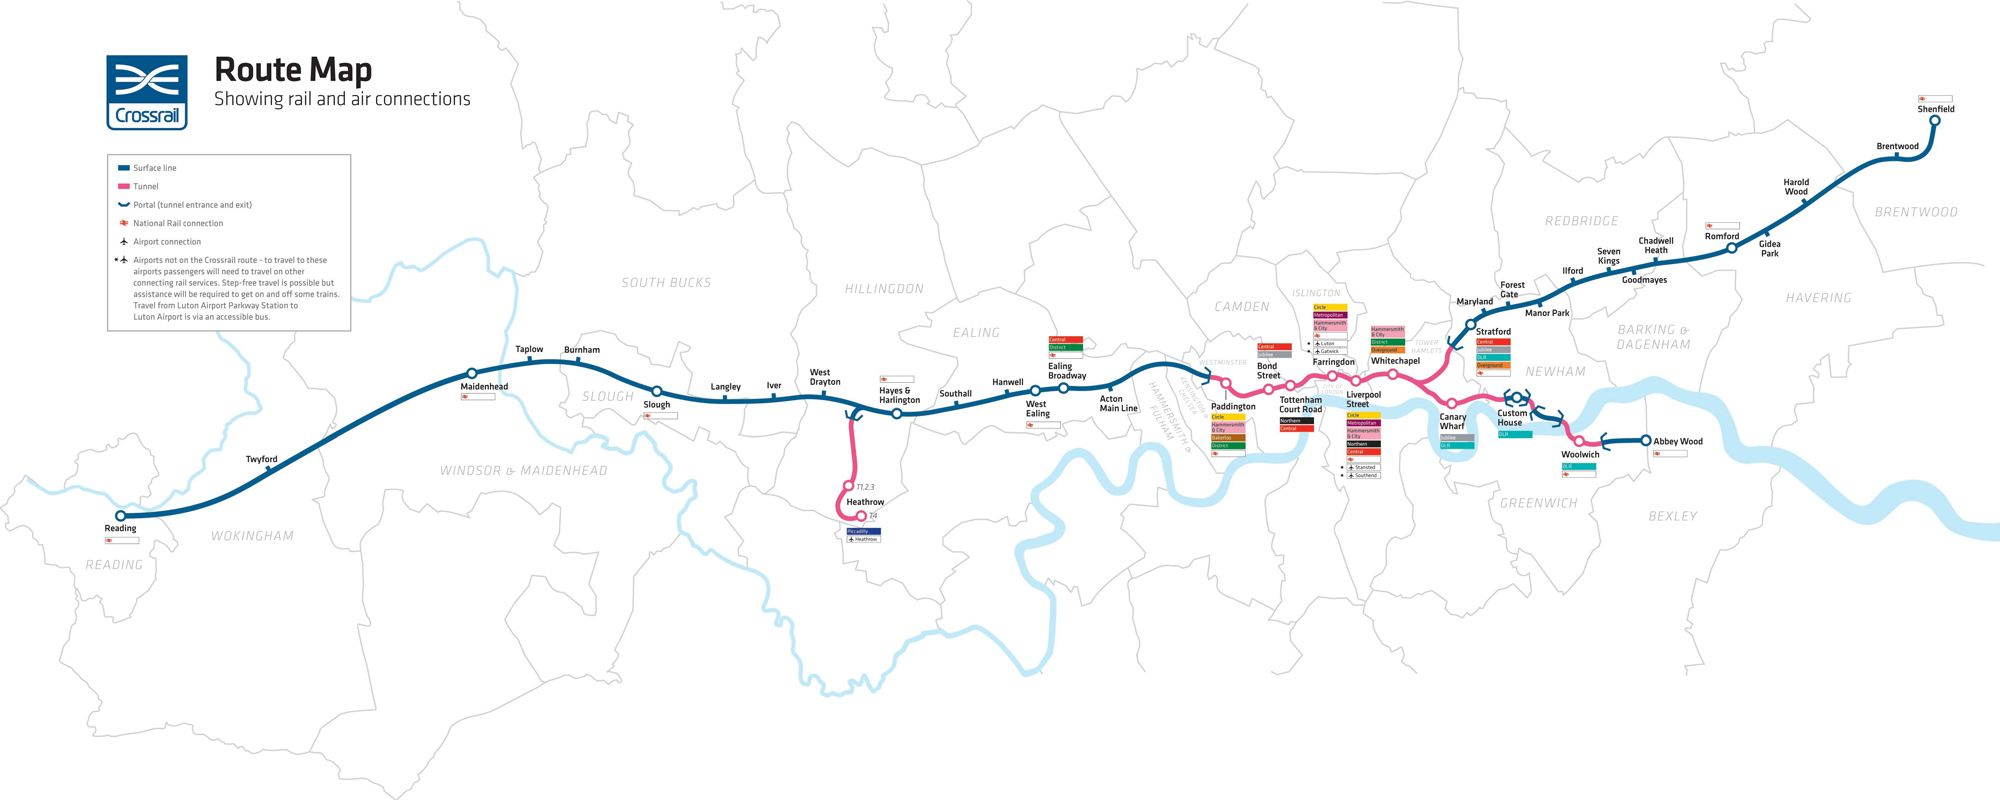 London's Crossrail Is a $21 Billion Test of Virtual Modeling - IEEE